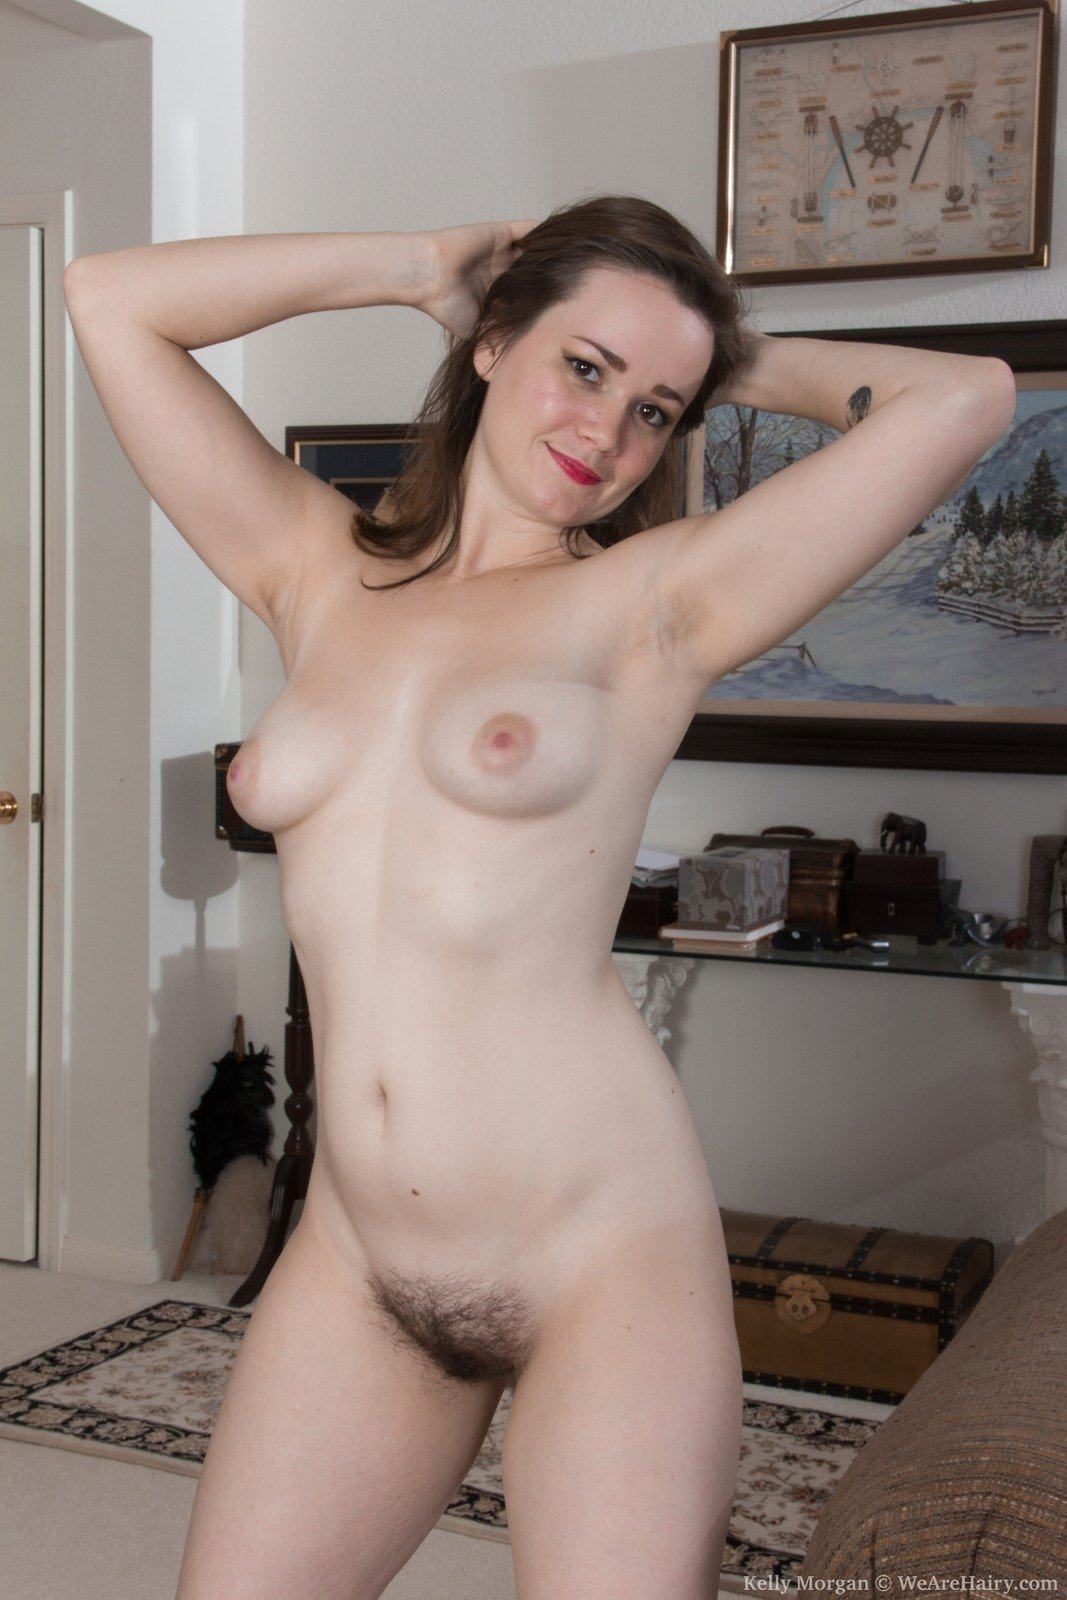 Chat cam online free adult #1